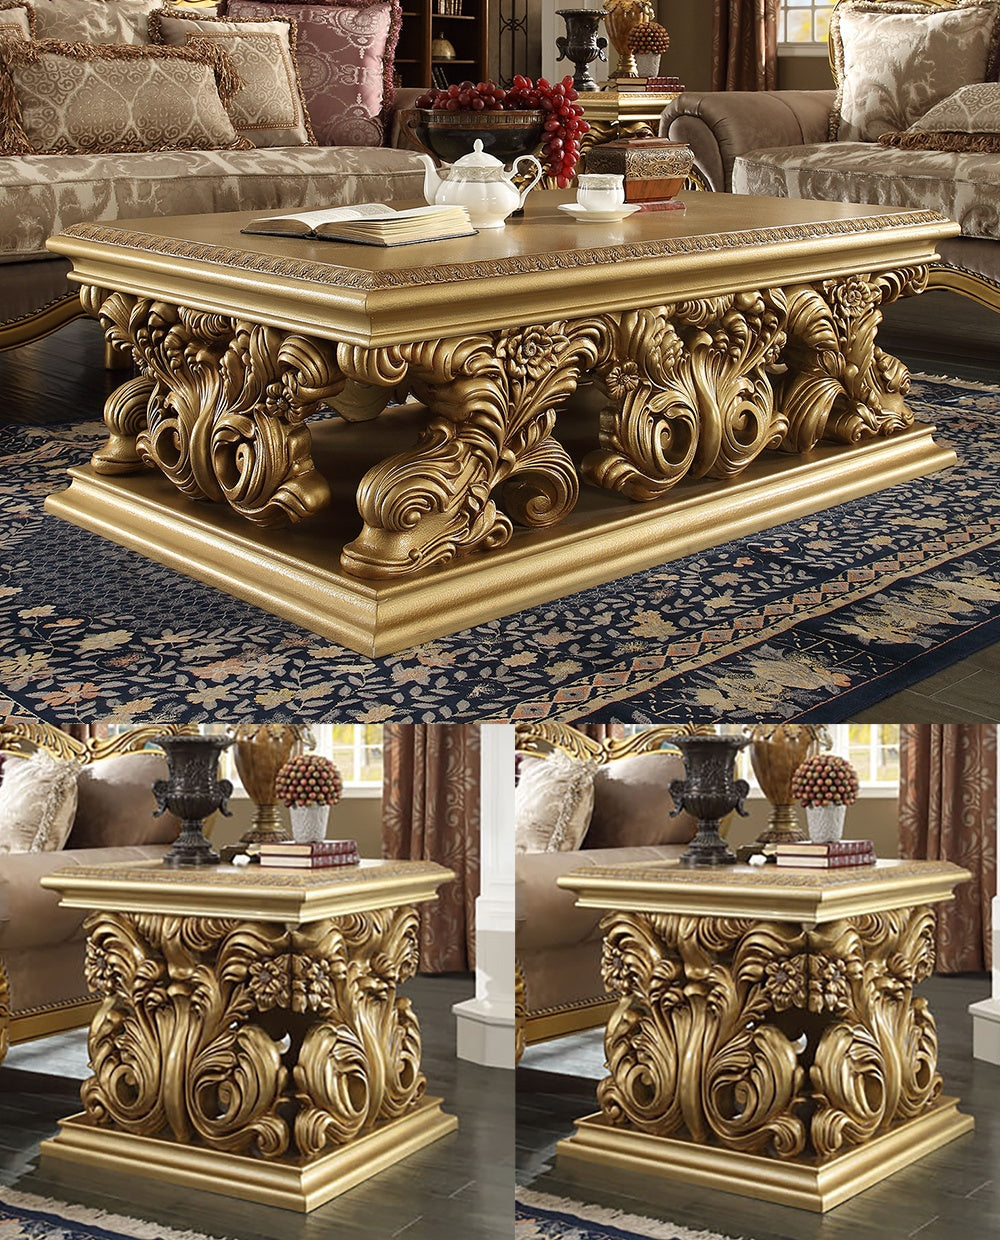 3 PC Coffee Table Set in Metallic Bright Gold Finish 8016-CTSET3 European Victorian